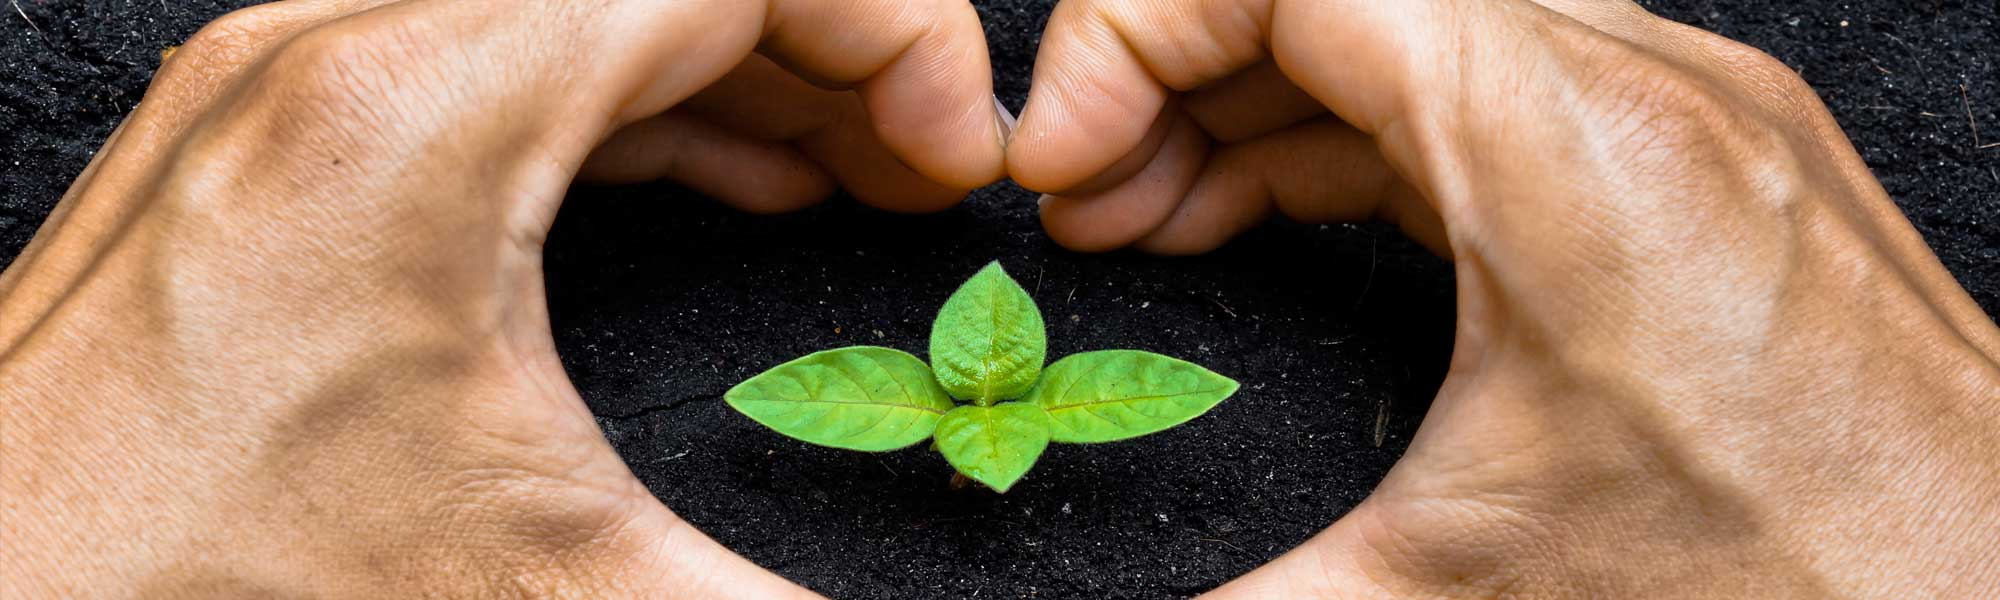 hearts around small plant. recycling saves the planet